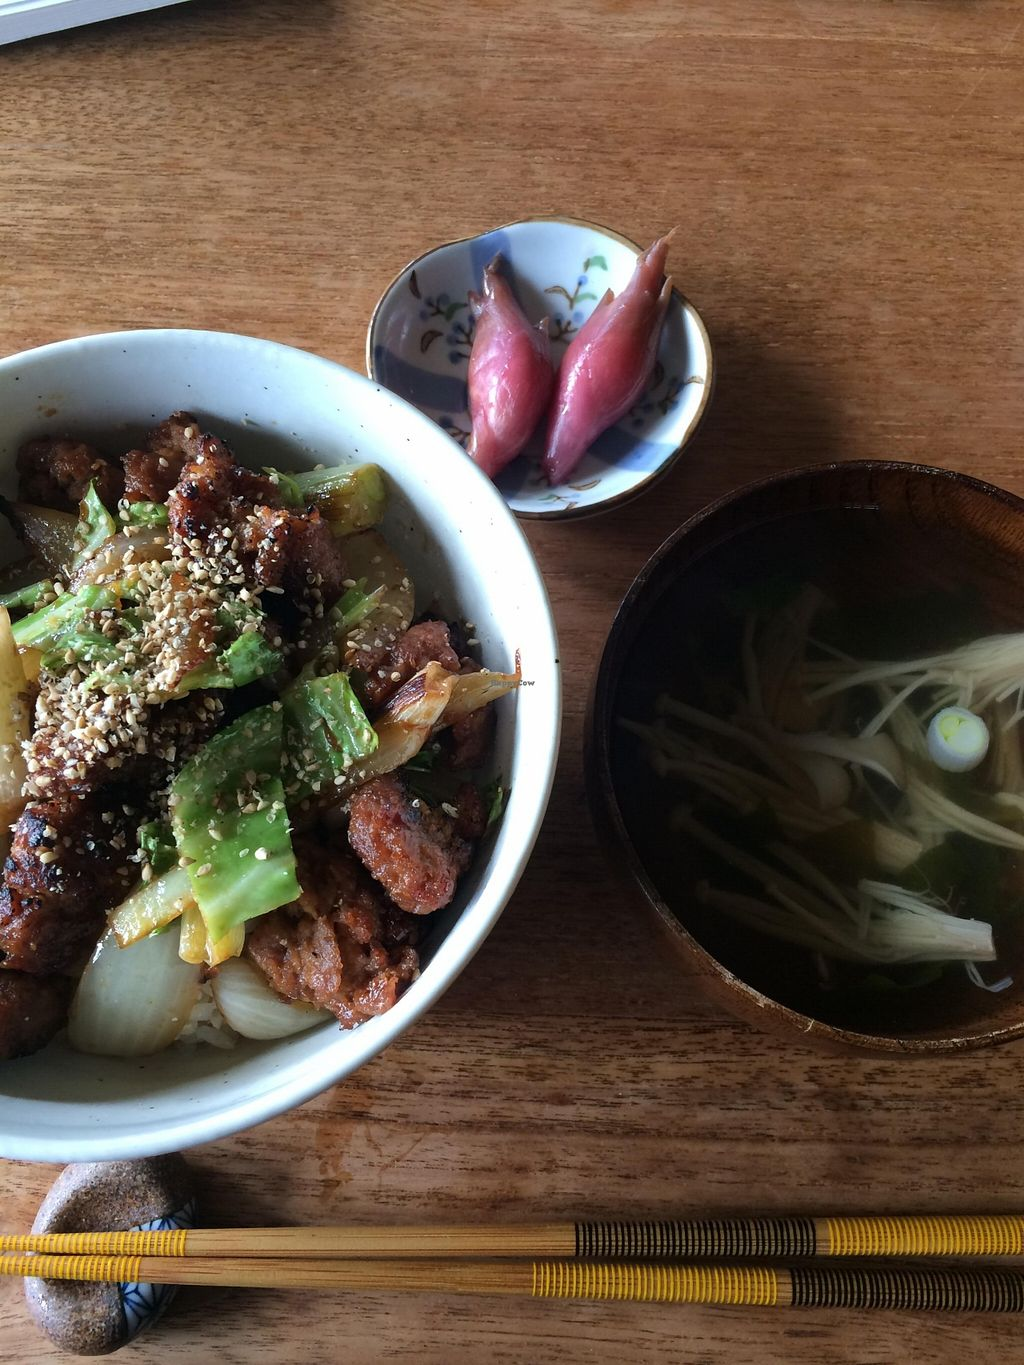 """Photo of Organic Cafe Kally  by <a href=""""/members/profile/Vegeiko"""">Vegeiko</a> <br/>Soy meat rice bowl with soup <br/> October 4, 2015  - <a href='/contact/abuse/image/64182/120227'>Report</a>"""